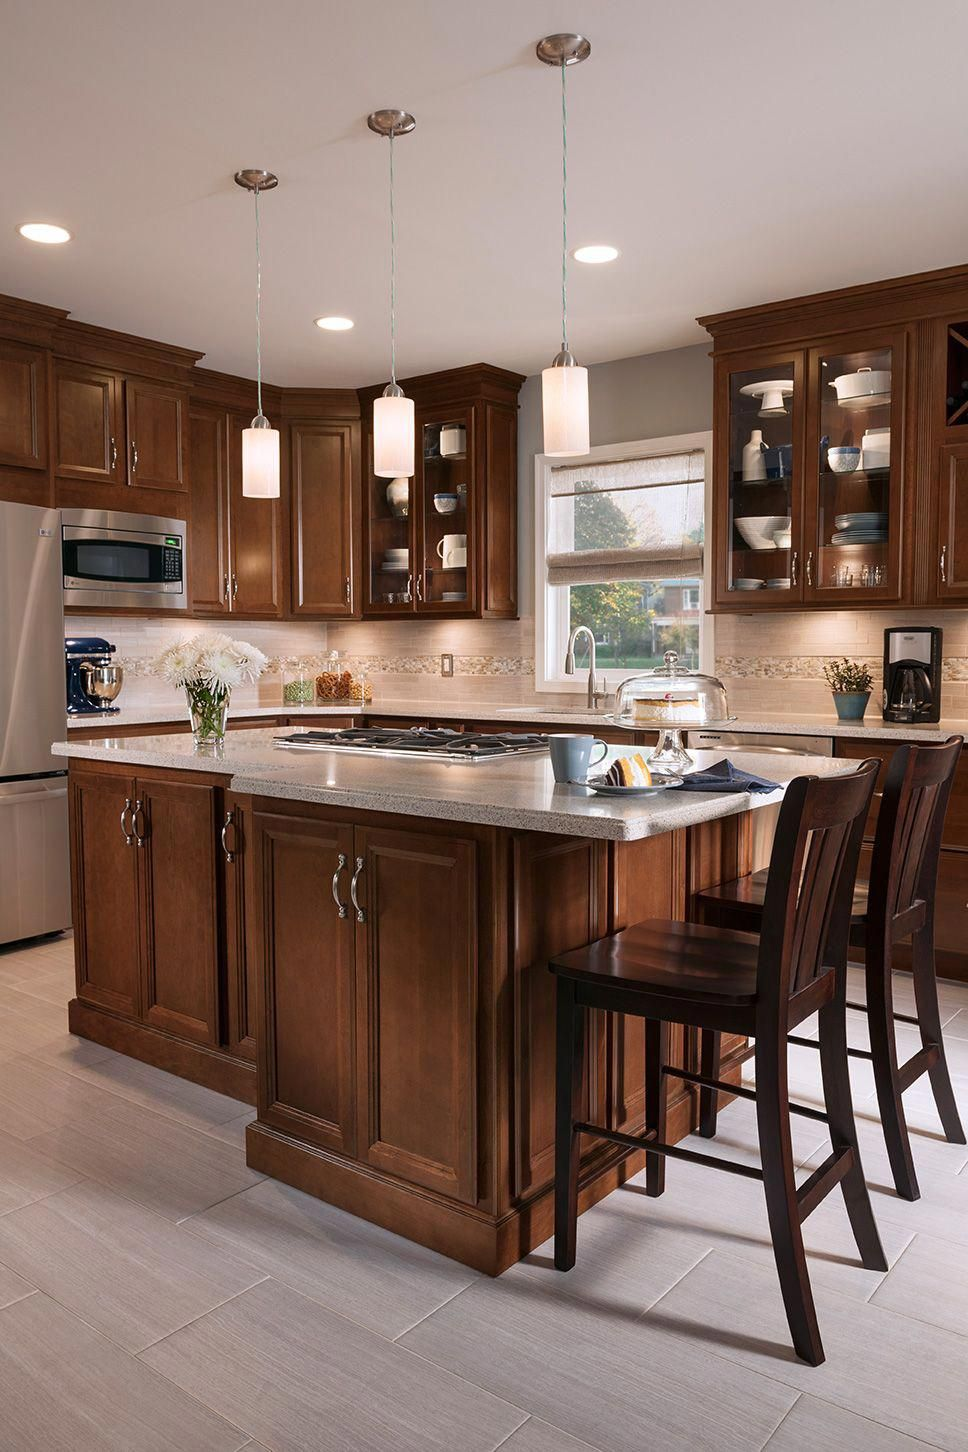 Sincere Graduated Kitchen Cabinets Diy Cherry Cabinets Kitchen Tuscan Kitchen Kitchen Renovation